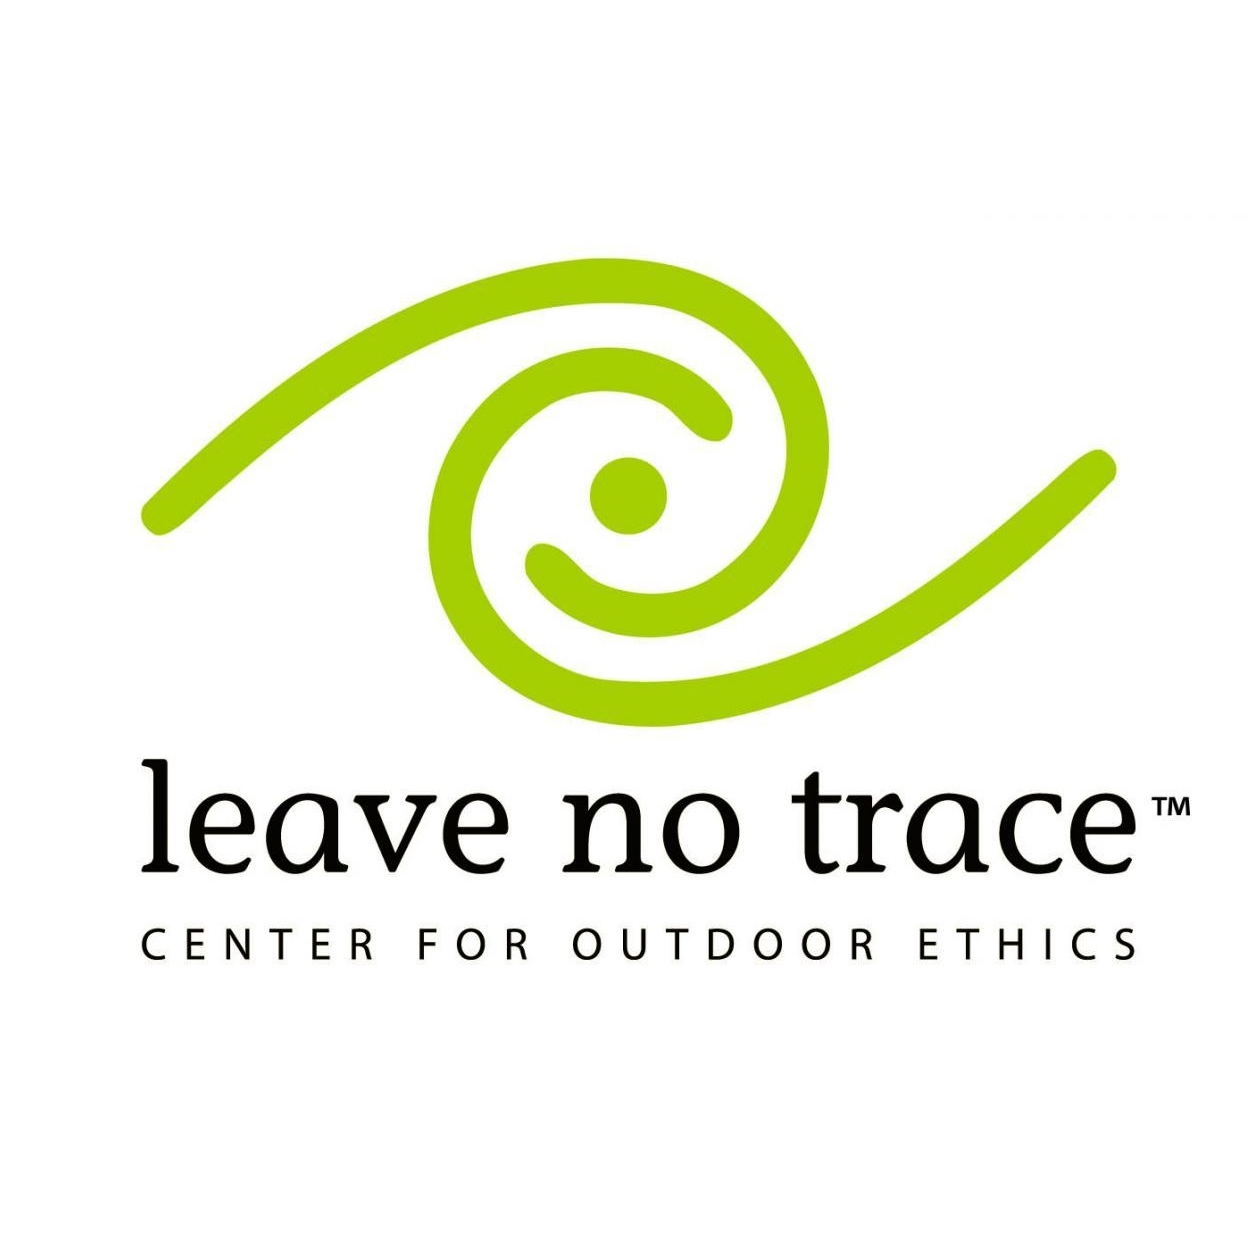 LNT - Leave no trace is a central pillar of our race, and we are grateful for the leadership that the Center for Outdoor Ethics takes in this area. LNT is a vital part of preserving our wild places, and you should practice LNT principles every time you go outside...from your local trails to the mountains, leave no trace. Be sure to brush up on all the LNT principles by looking on their website.